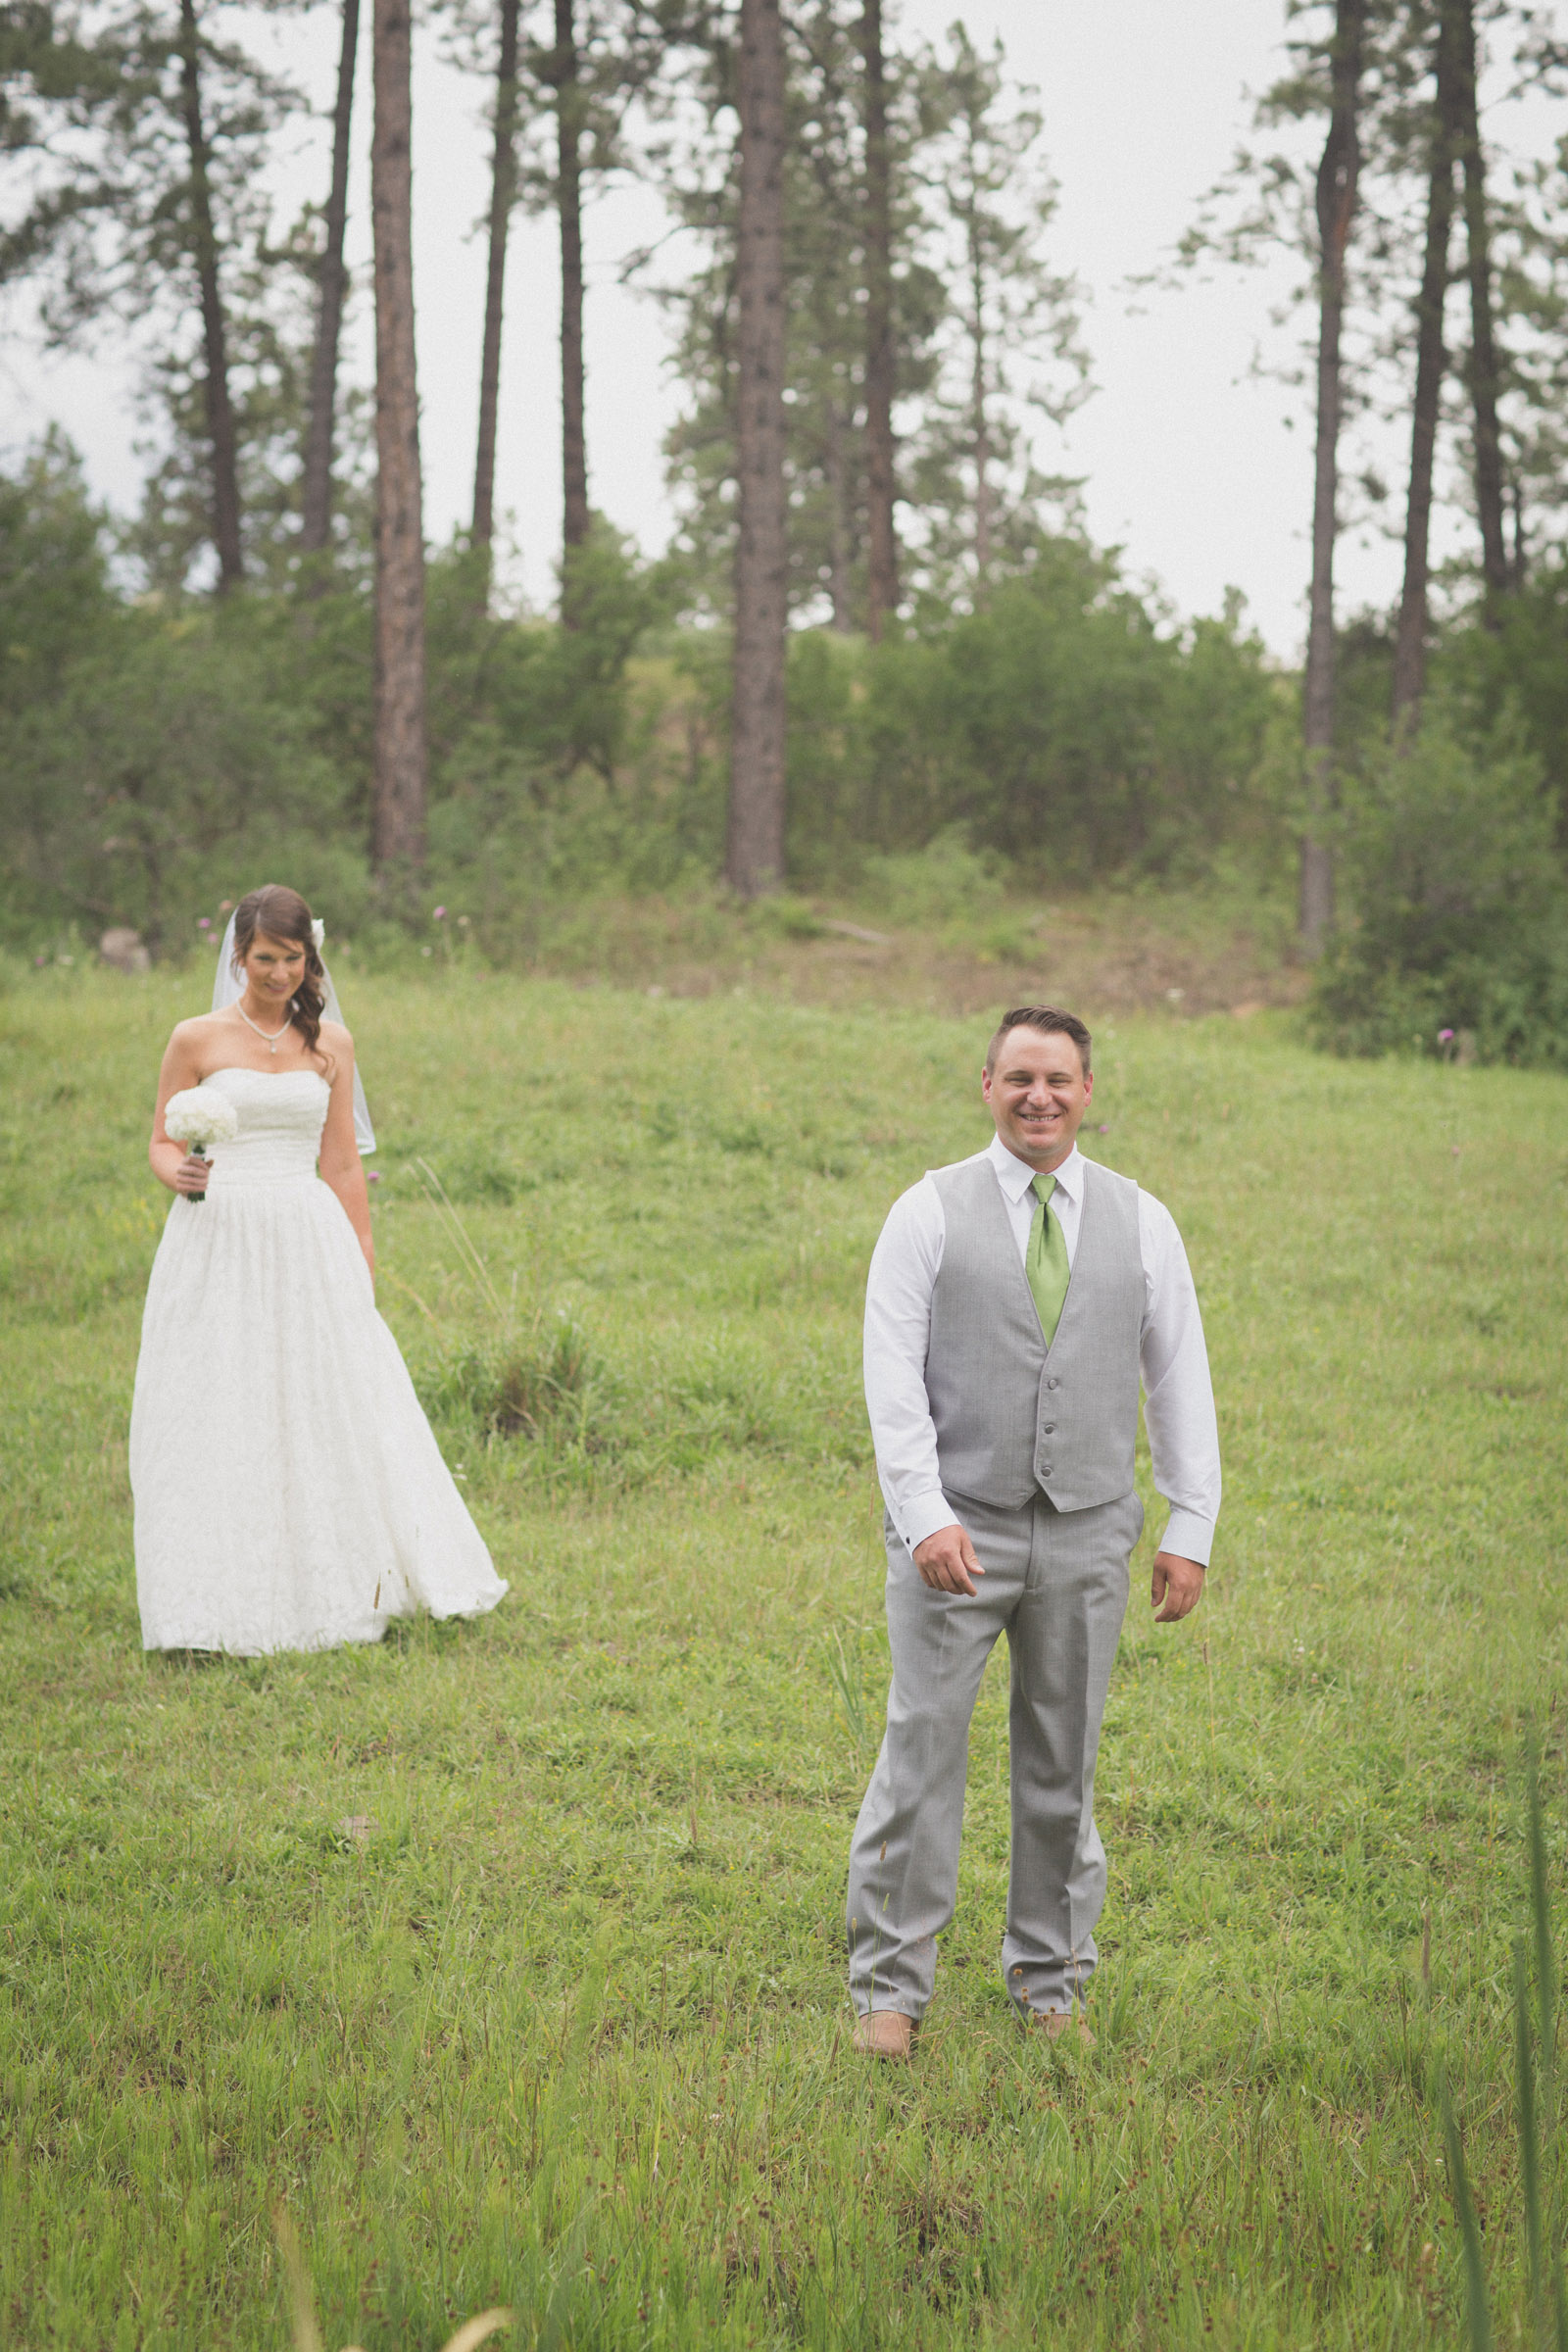 062-groom-bride-wedding-cabin-woods-forest-pictures-photos-dress-photography-portraits-first-look-firstlook-reveal-happy-farmington-aztec-durango-mancos-co-nm